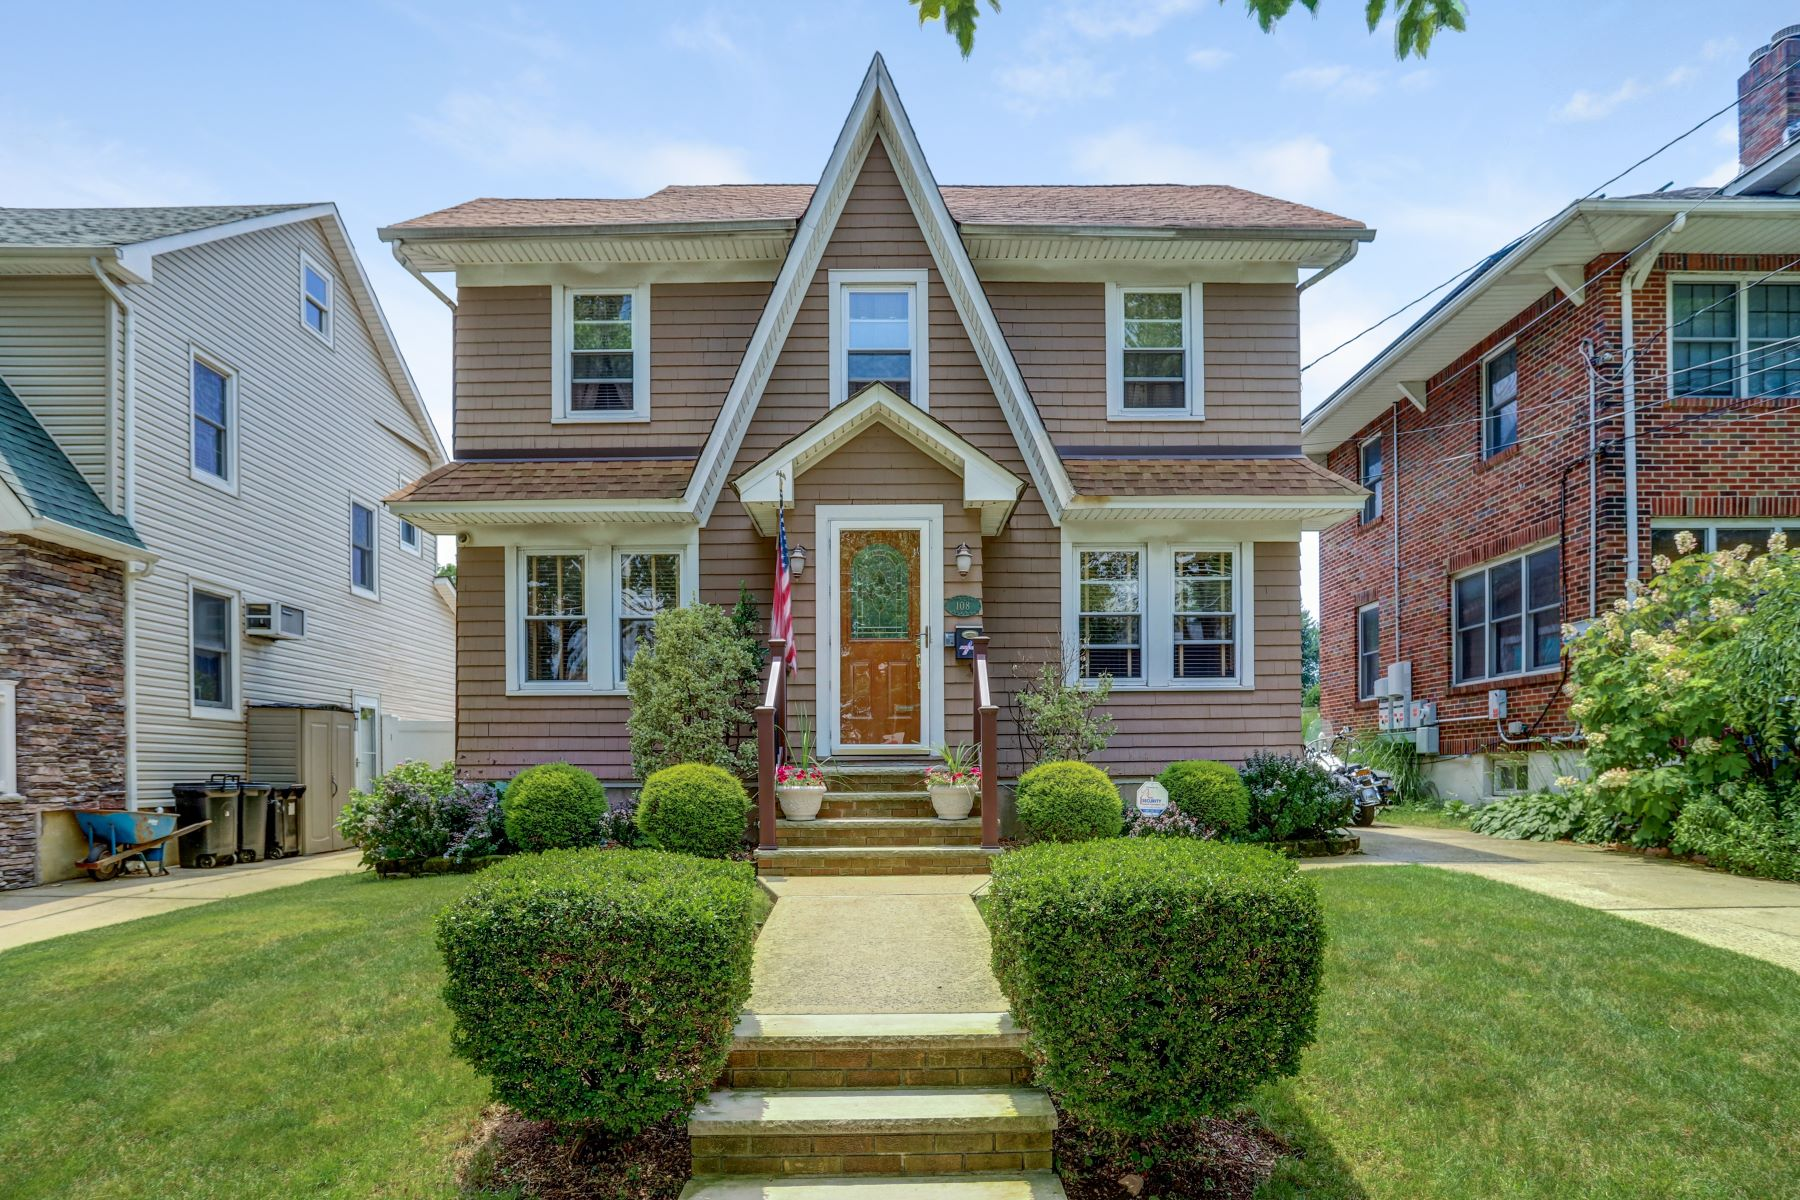 Single Family Homes for Sale at Quintessential Westerleigh Colonial 108 Riegelmann Street Staten Island, New York 10302 United States